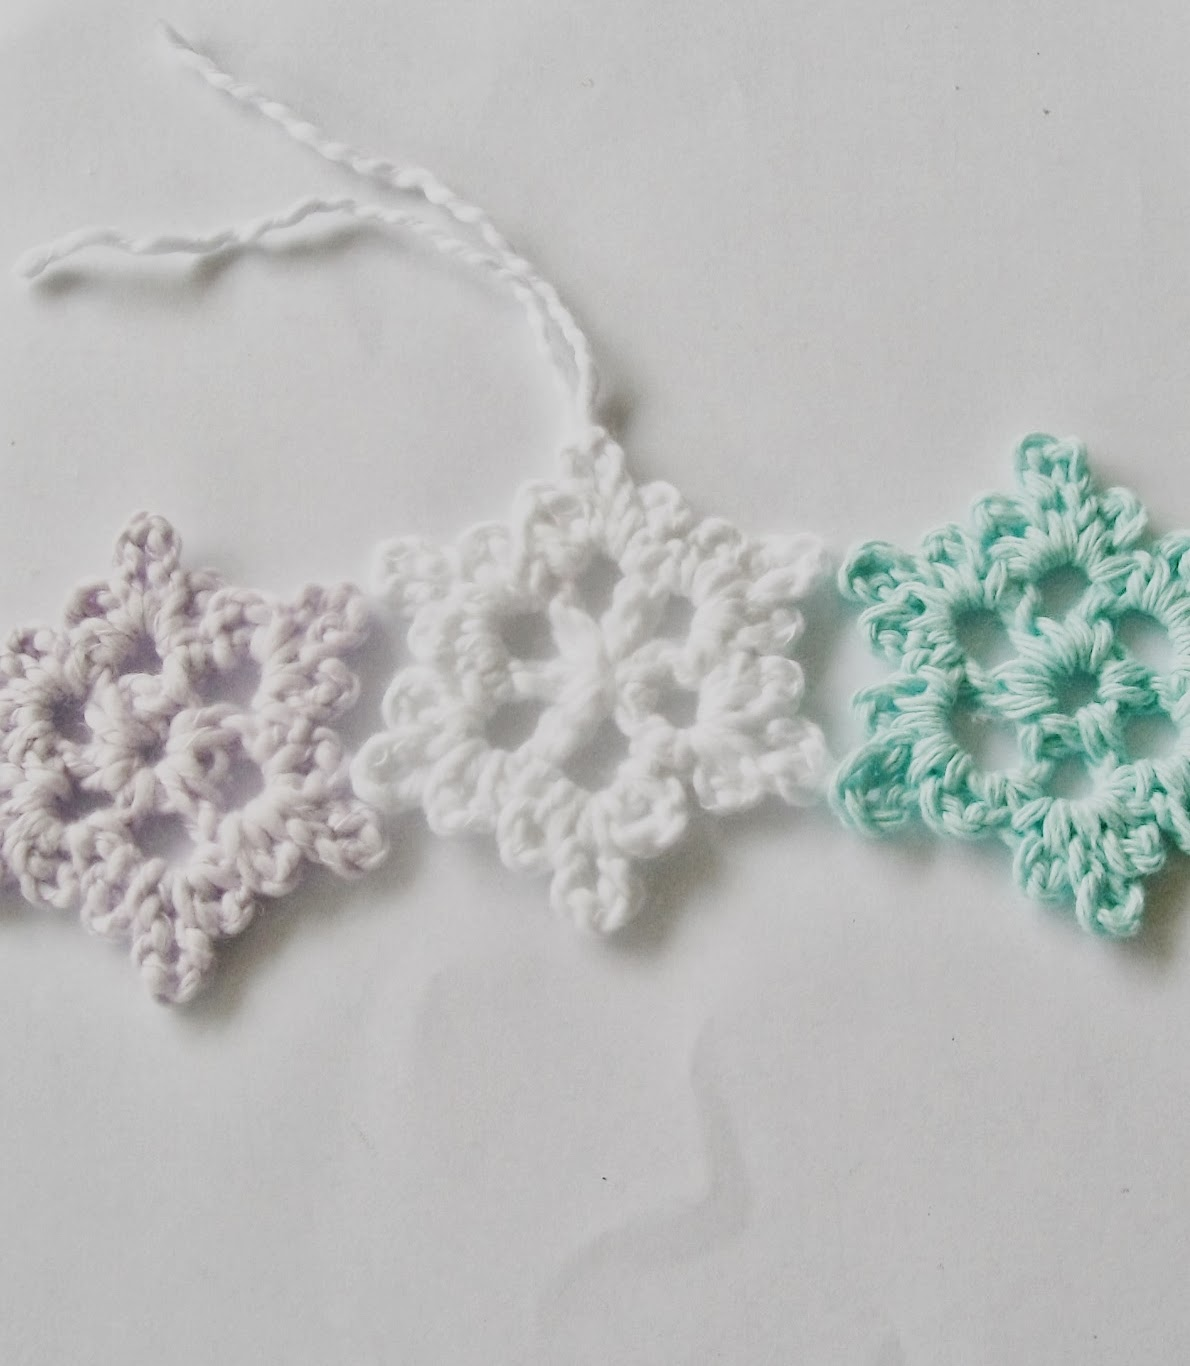 Crocheting Easy Patterns : Flower Girl Cottage : Easy Crochet Snowflake Pattern